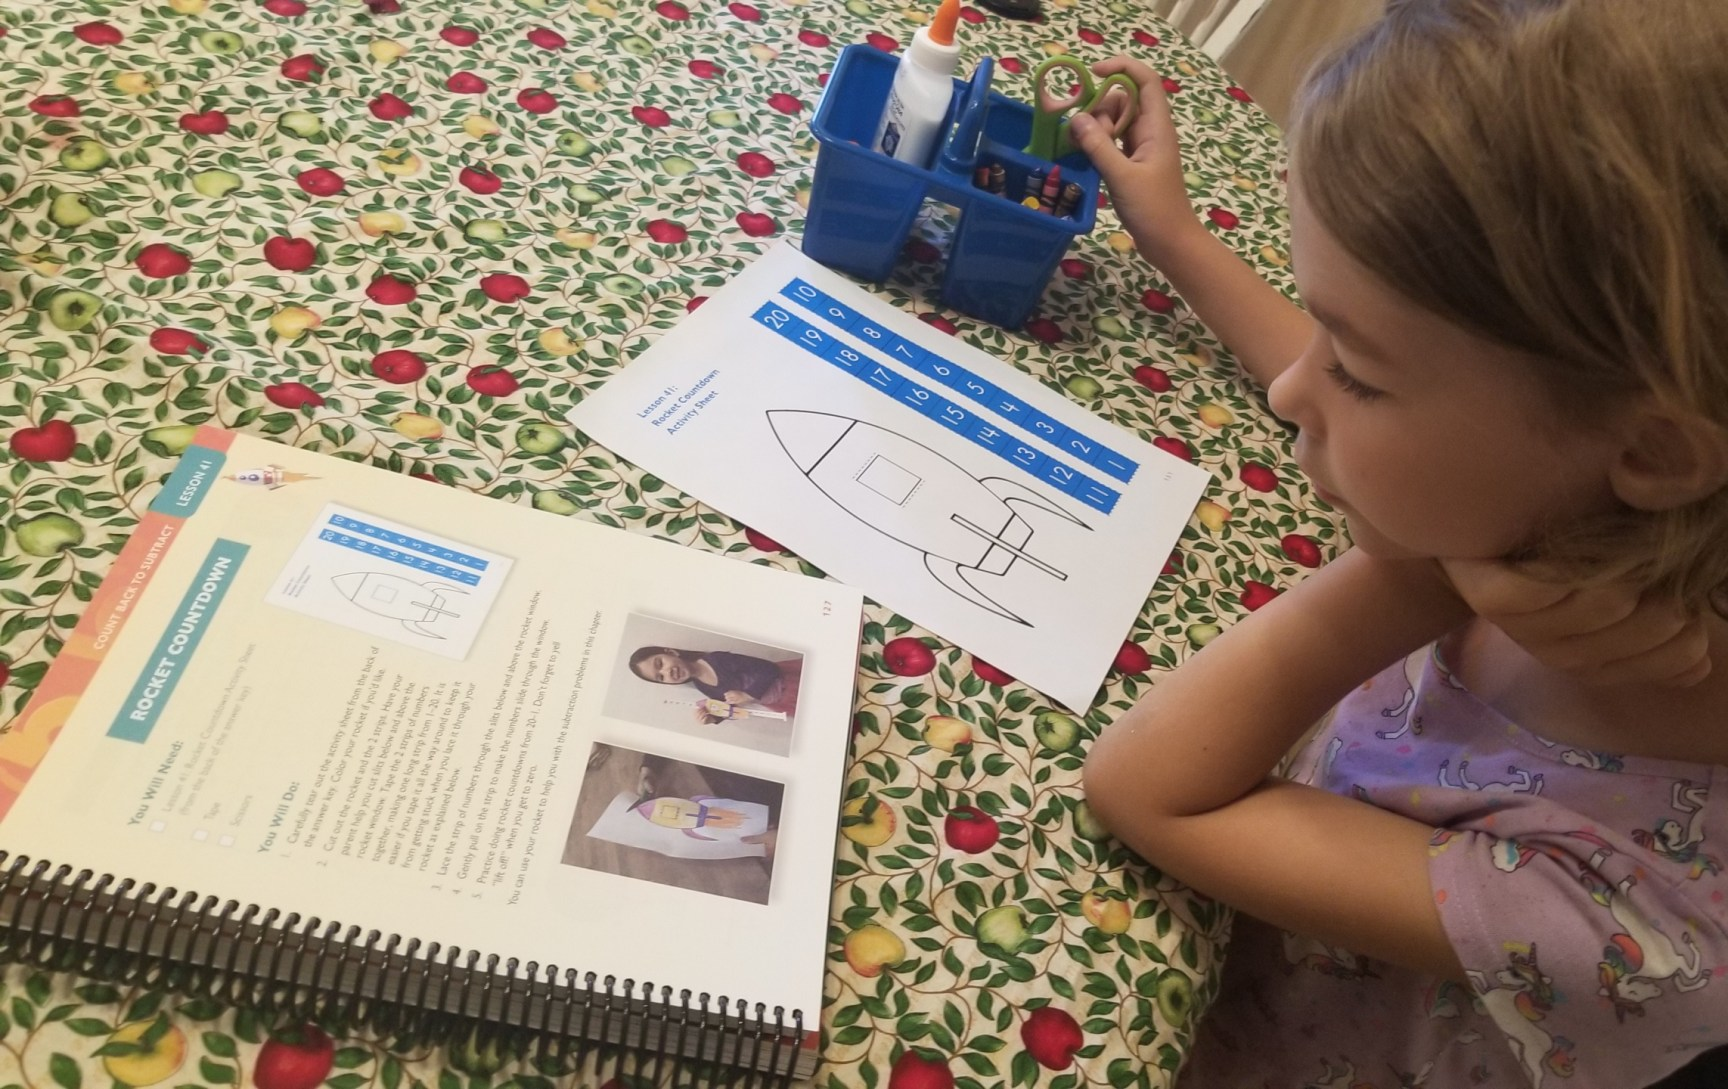 Apologia is a simple homeschool math curriculum your kids will love.